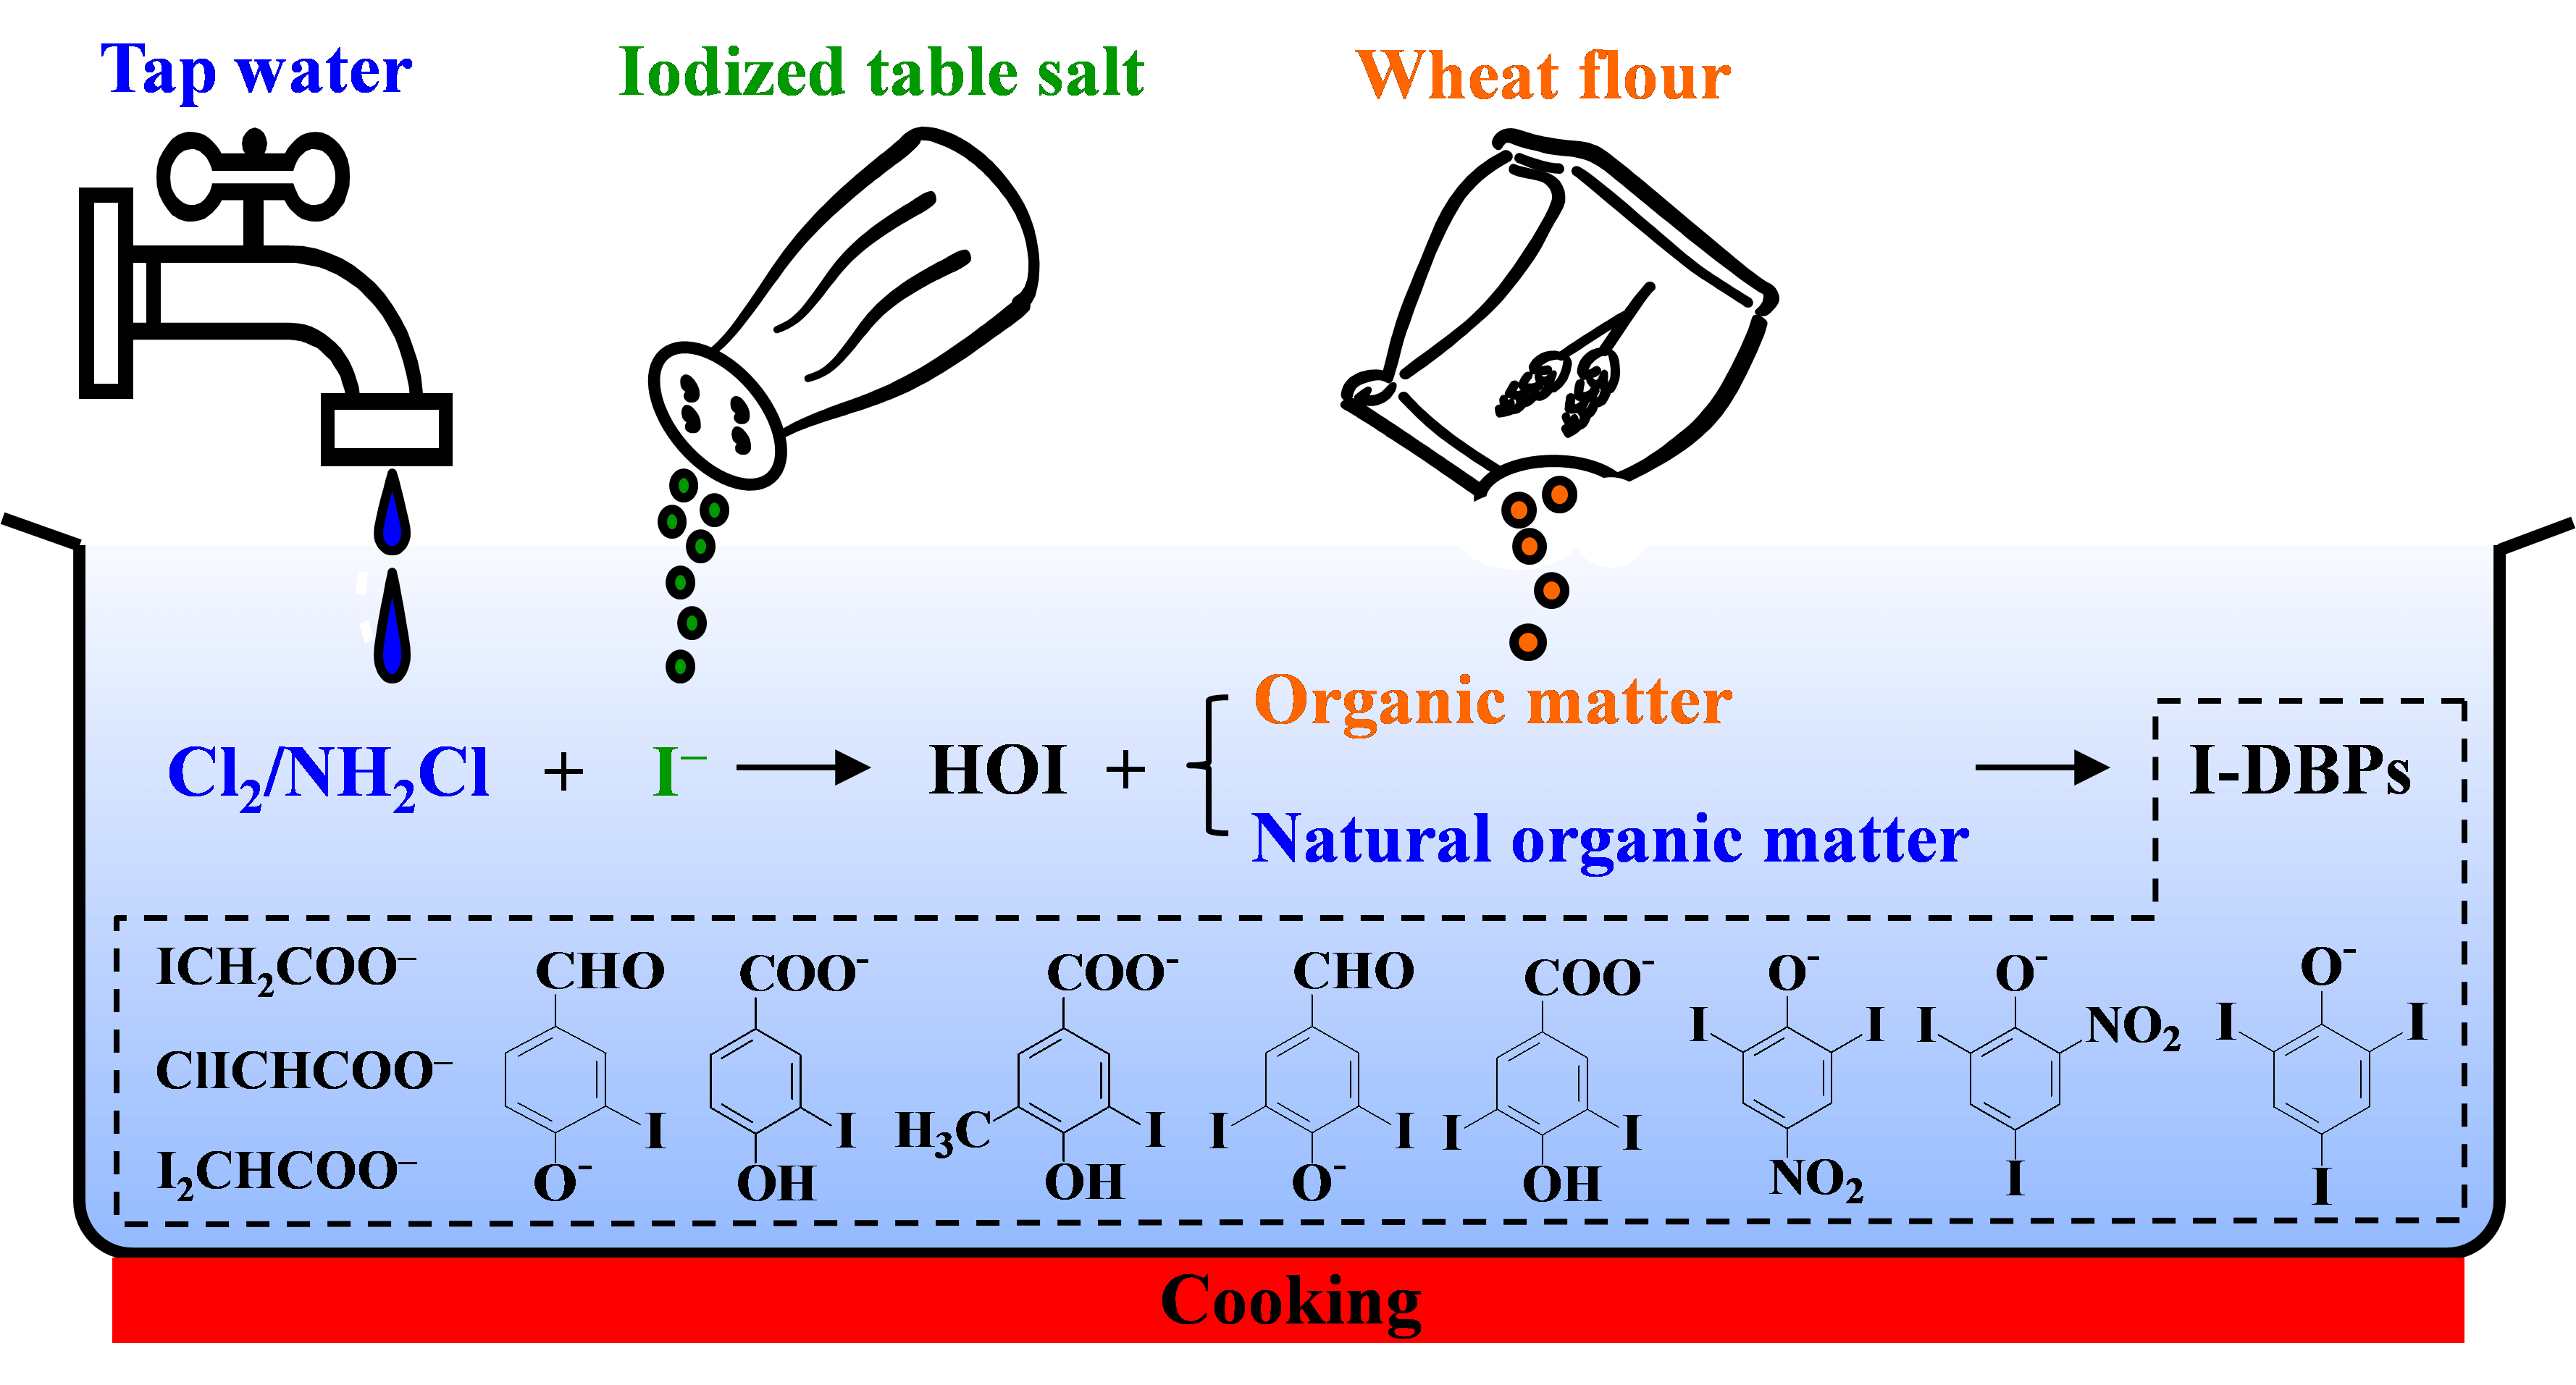 Iodinated Disinfection Byproducts in cooking with chlor(am)innate tap water and iodized table salt